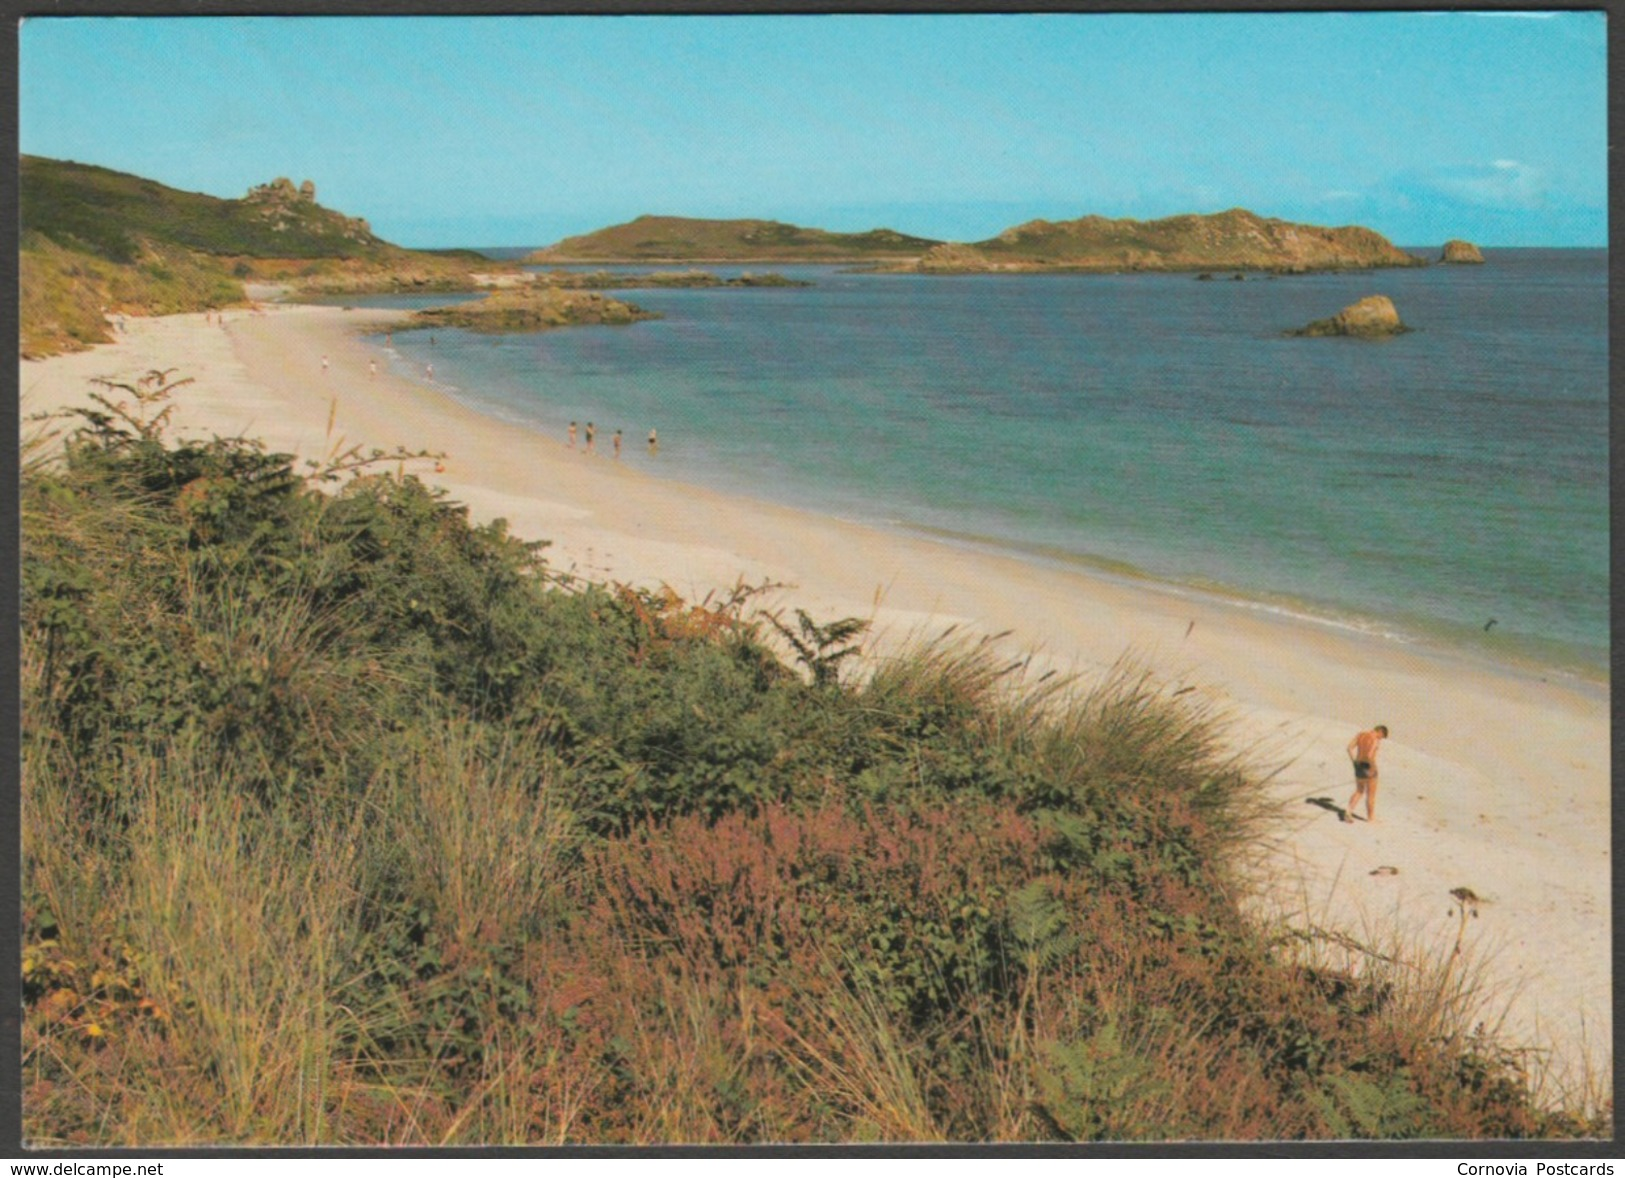 Great Bay, St Martin's, Isles Of Scilly, 1991 - Beric Tempest Postcard - Scilly Isles